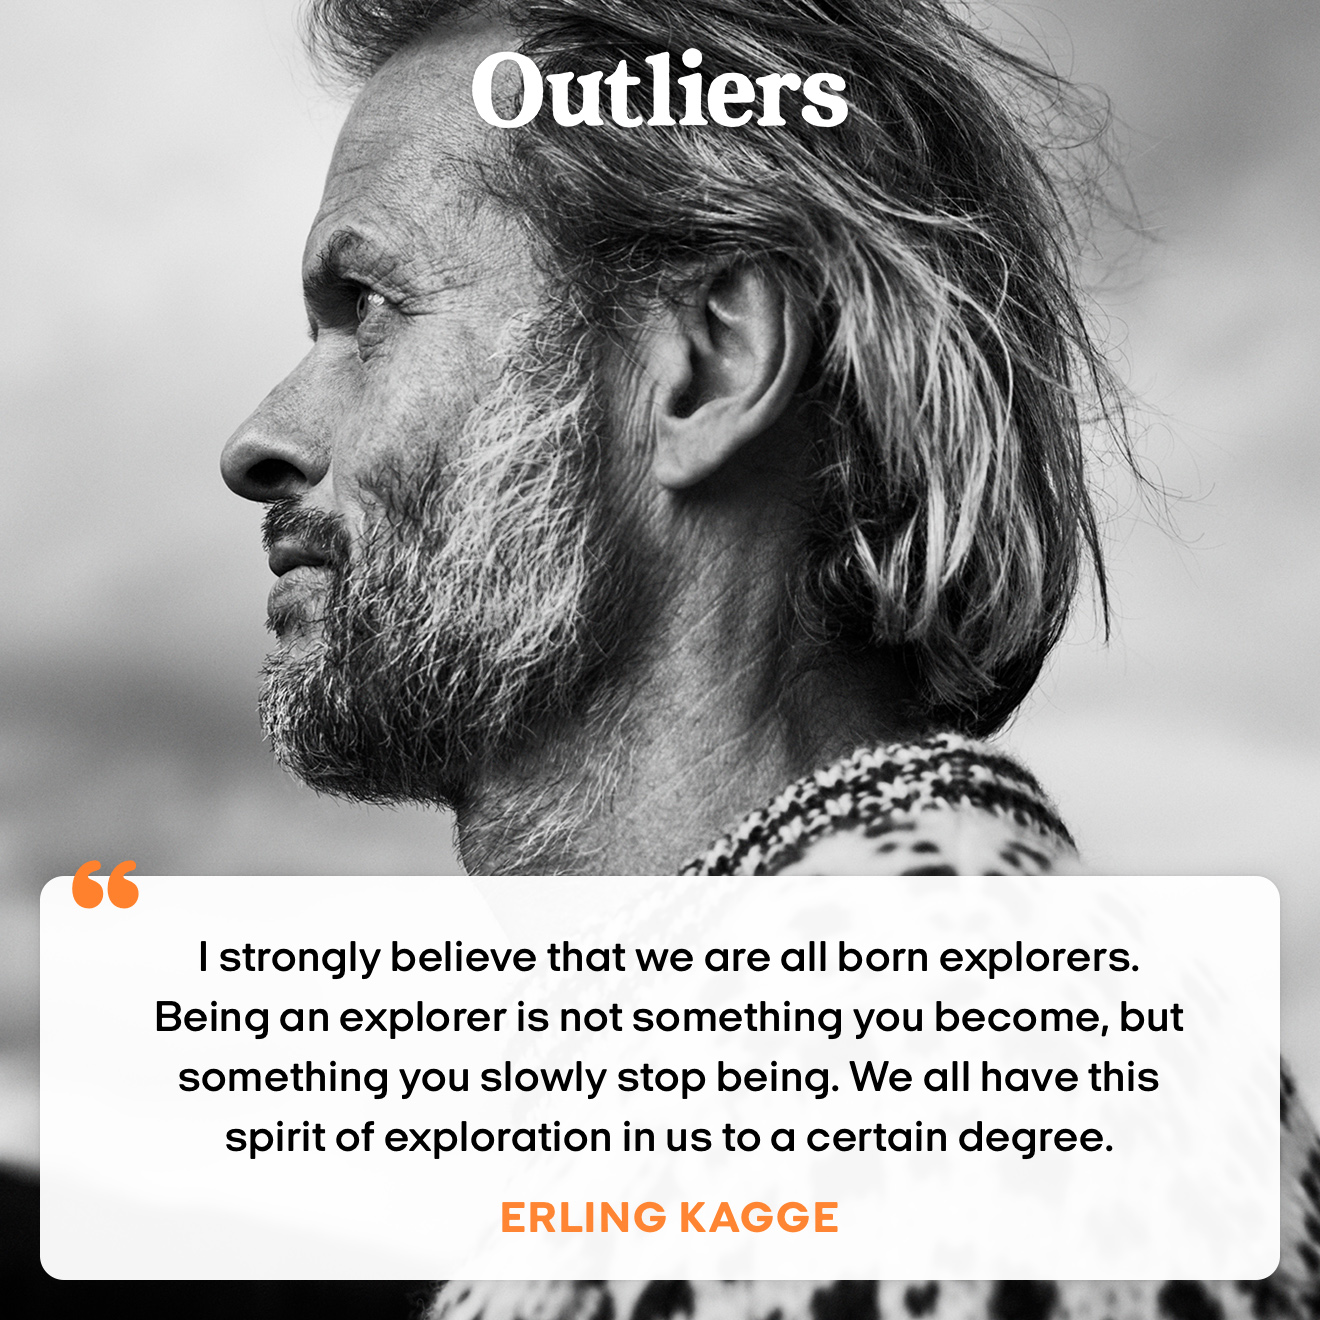 """I strongly believe that we are all born explorers. Being an explorer is not something you become, but something you slowly stop being. We all have this spirit of exploration in us to a certain degree."""